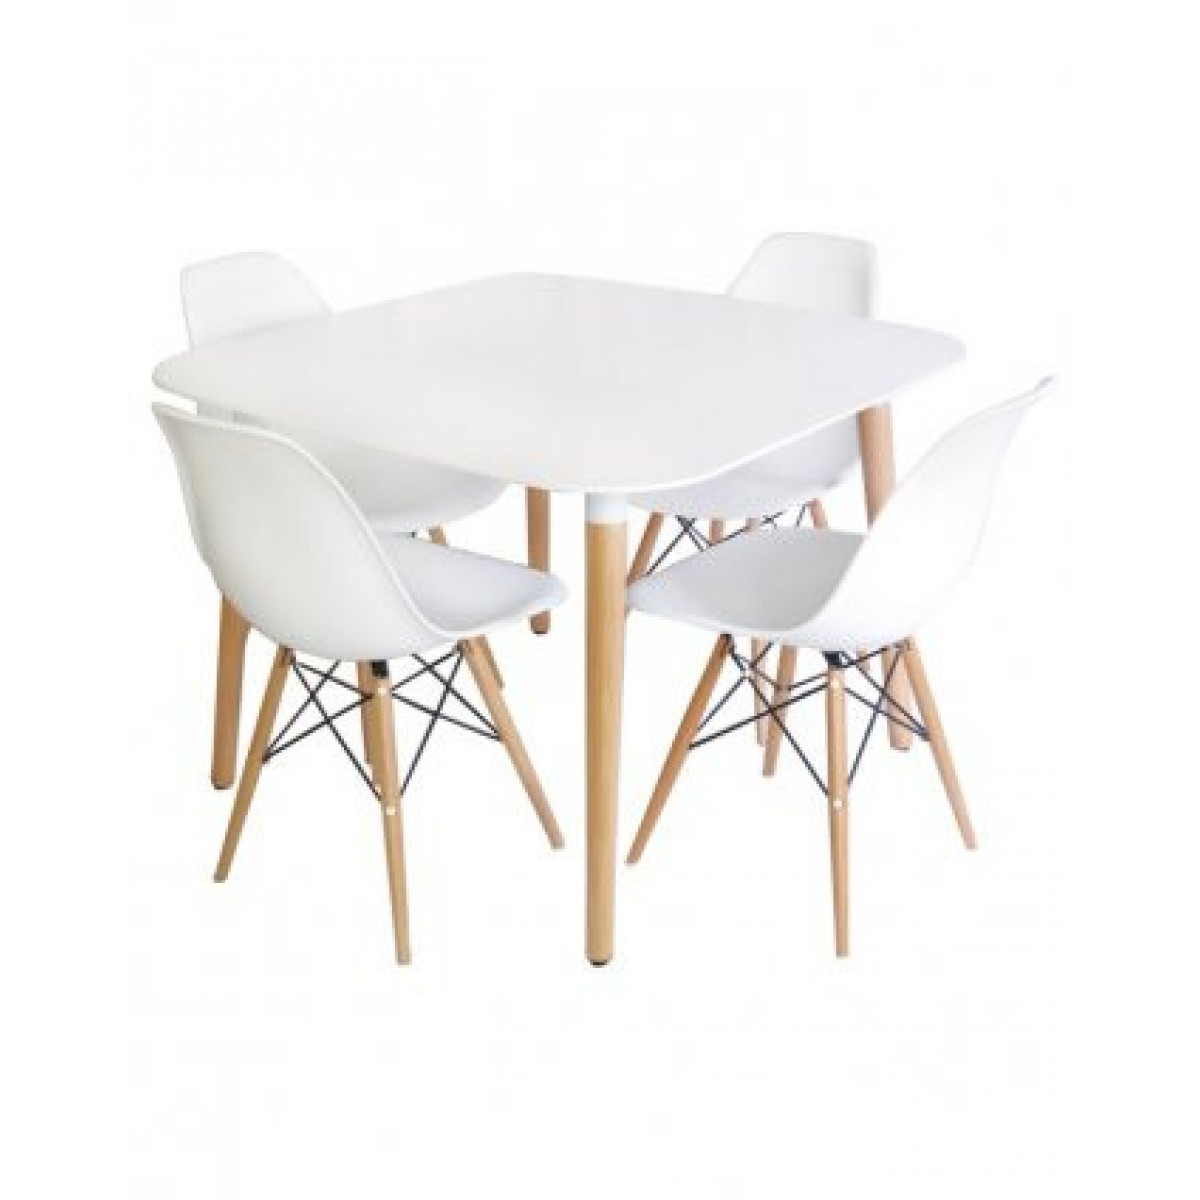 White Square Dining Table: Eames Style DSW White Square Dining Table